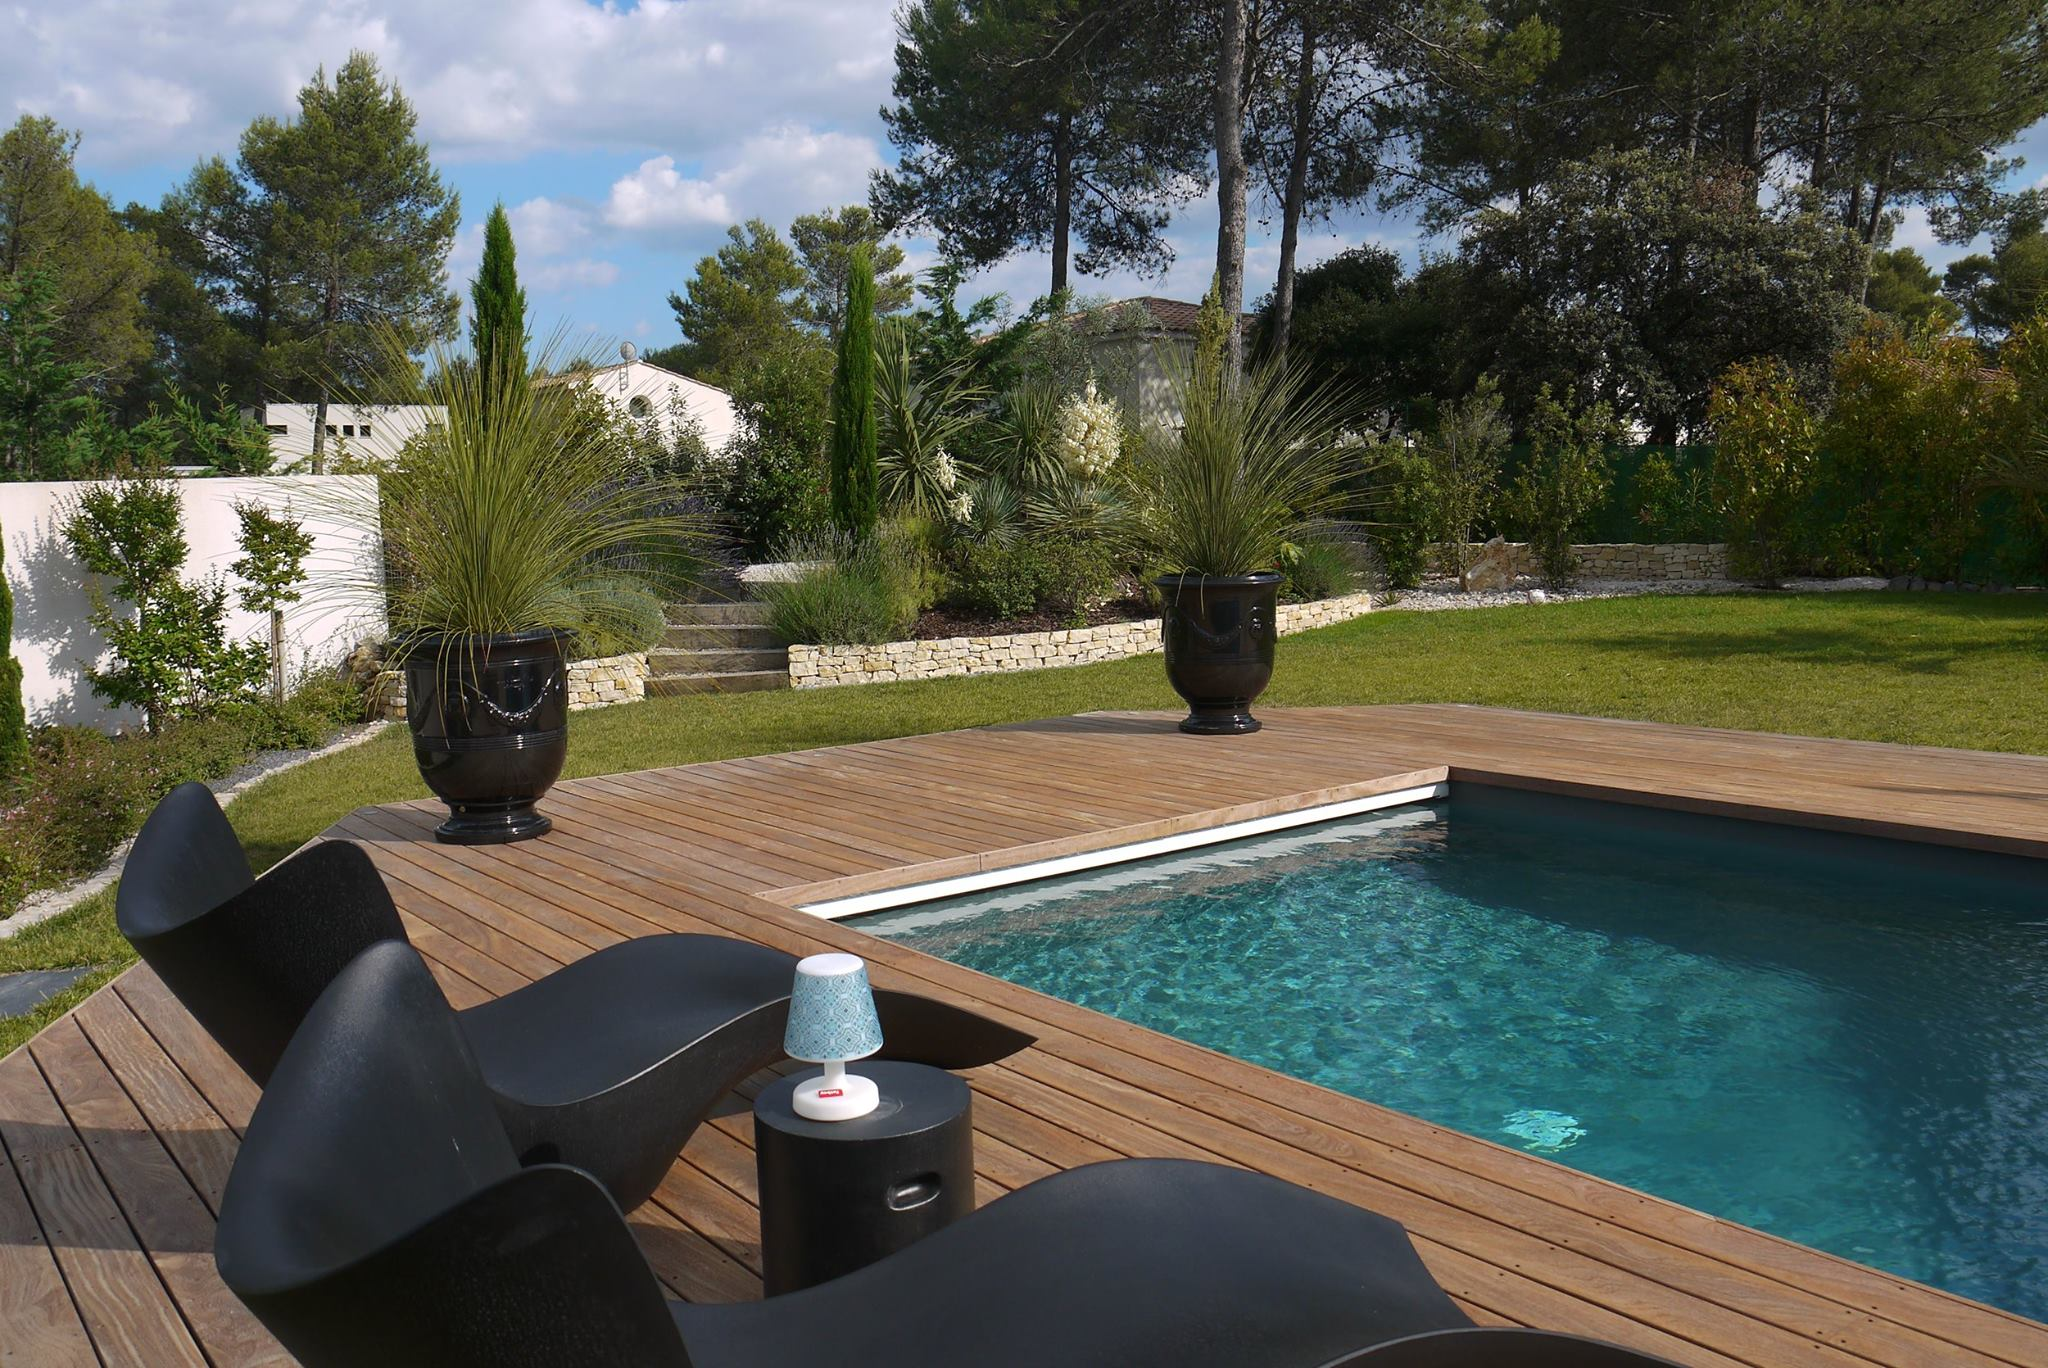 Paysagiste montpellier amenagement jardin decoration jardin for Amenagement deco jardin